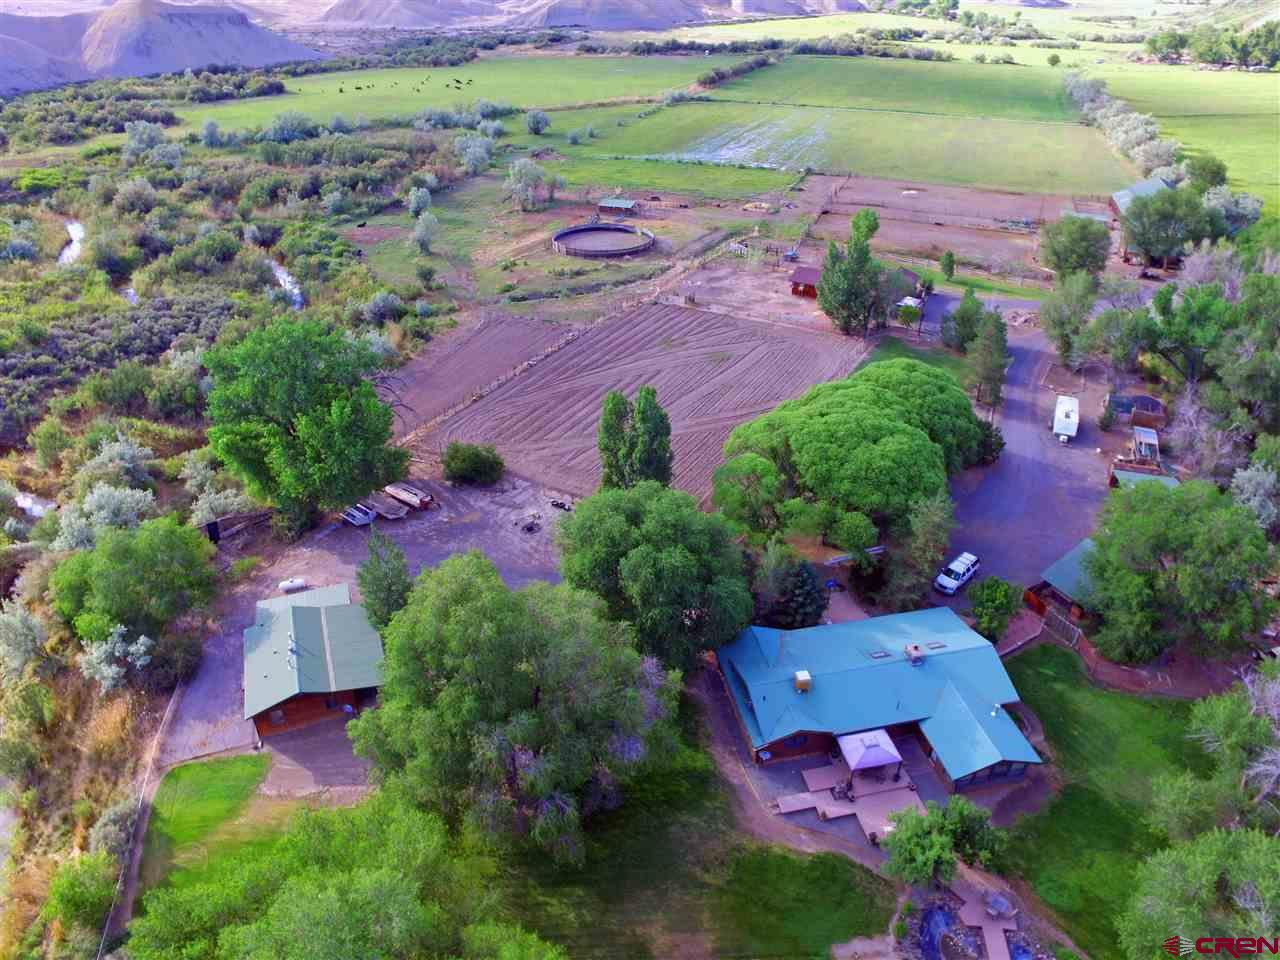 4 Dwellings on this 69 irrigated acres for a total of 6273 square feet of living space which includes 9 bedrooms and 7 baths, as well as a bunkroom that sleeps up to 8 or more. House#1 has 2083sqft, 2bed/2bath, House#2 has 2310sqft., 3bed/2bath. House#3 has 800sqft, 2bed/1bath and House#4 has 1080sqft., 1bed/1bath with downstairs bunkroom and bath. Completely setup for horses and cattle including a 120x180 arena, round pen, cattle chute, tack room, stalls, etc. Buyers would have room for themselves and lots of quest. Currently House #3 is rented month to month. Possible Property Use is endless for this little piece of Paradise so use your imagination.